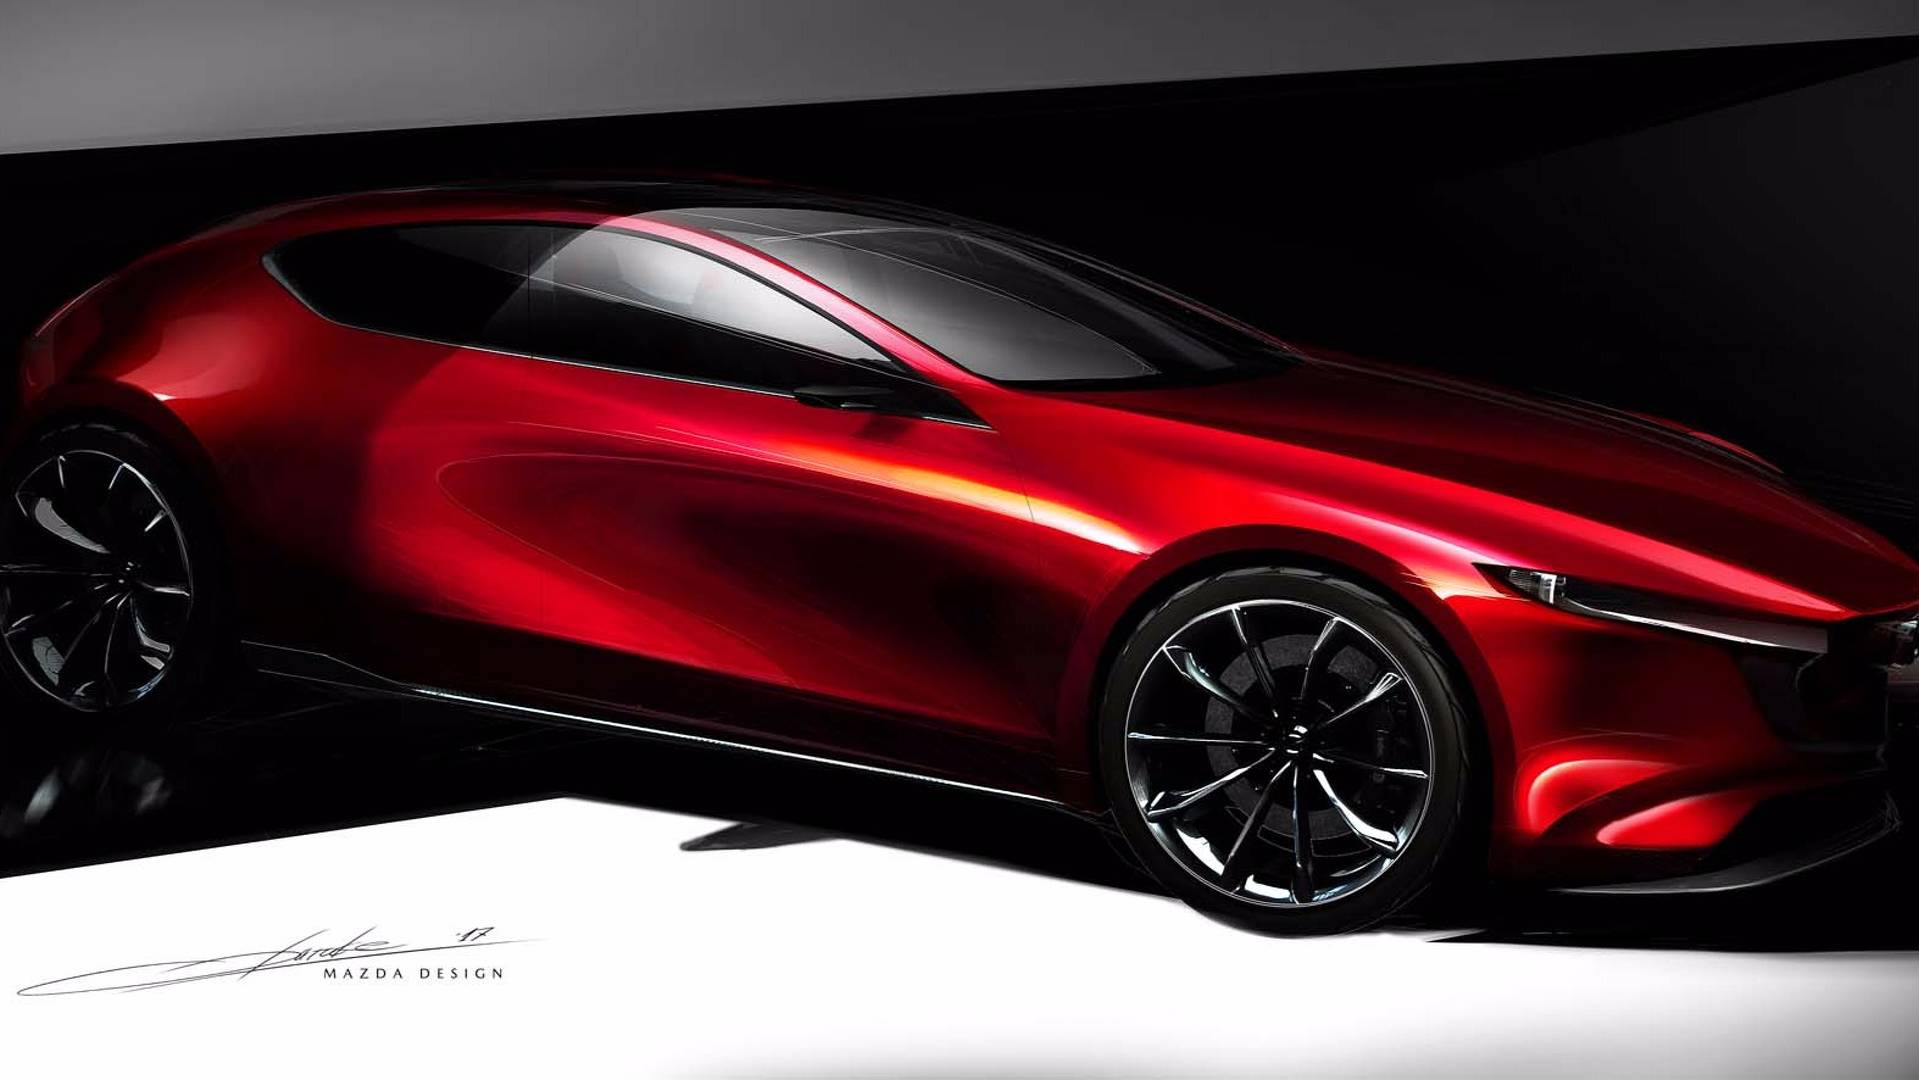 3de4b248db Mazda reveals KAI CONCEPT and VISION COUPE